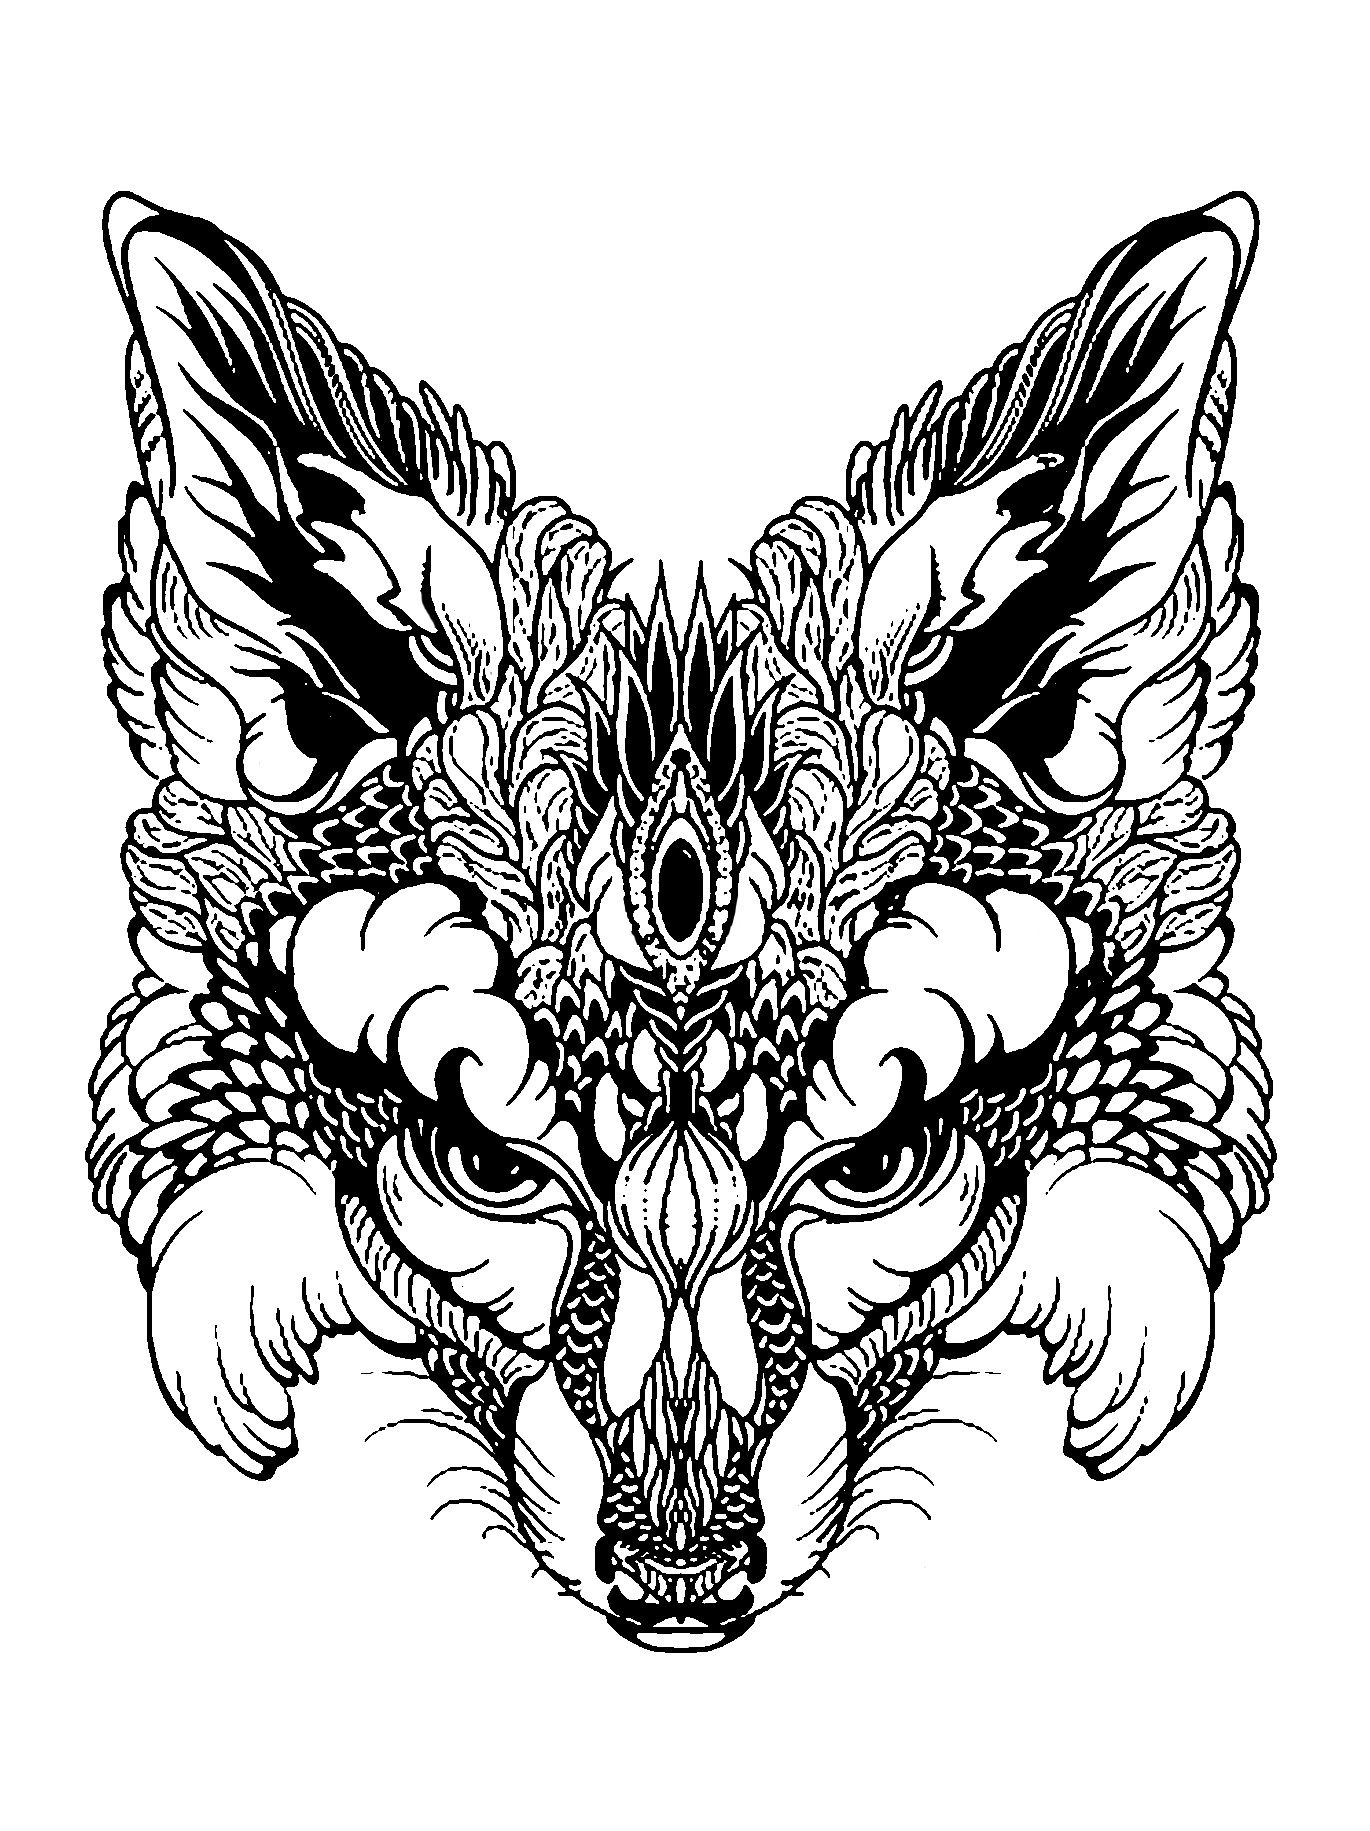 Coloring page of a fox in black & whiteFrom the gallery : Animals ...